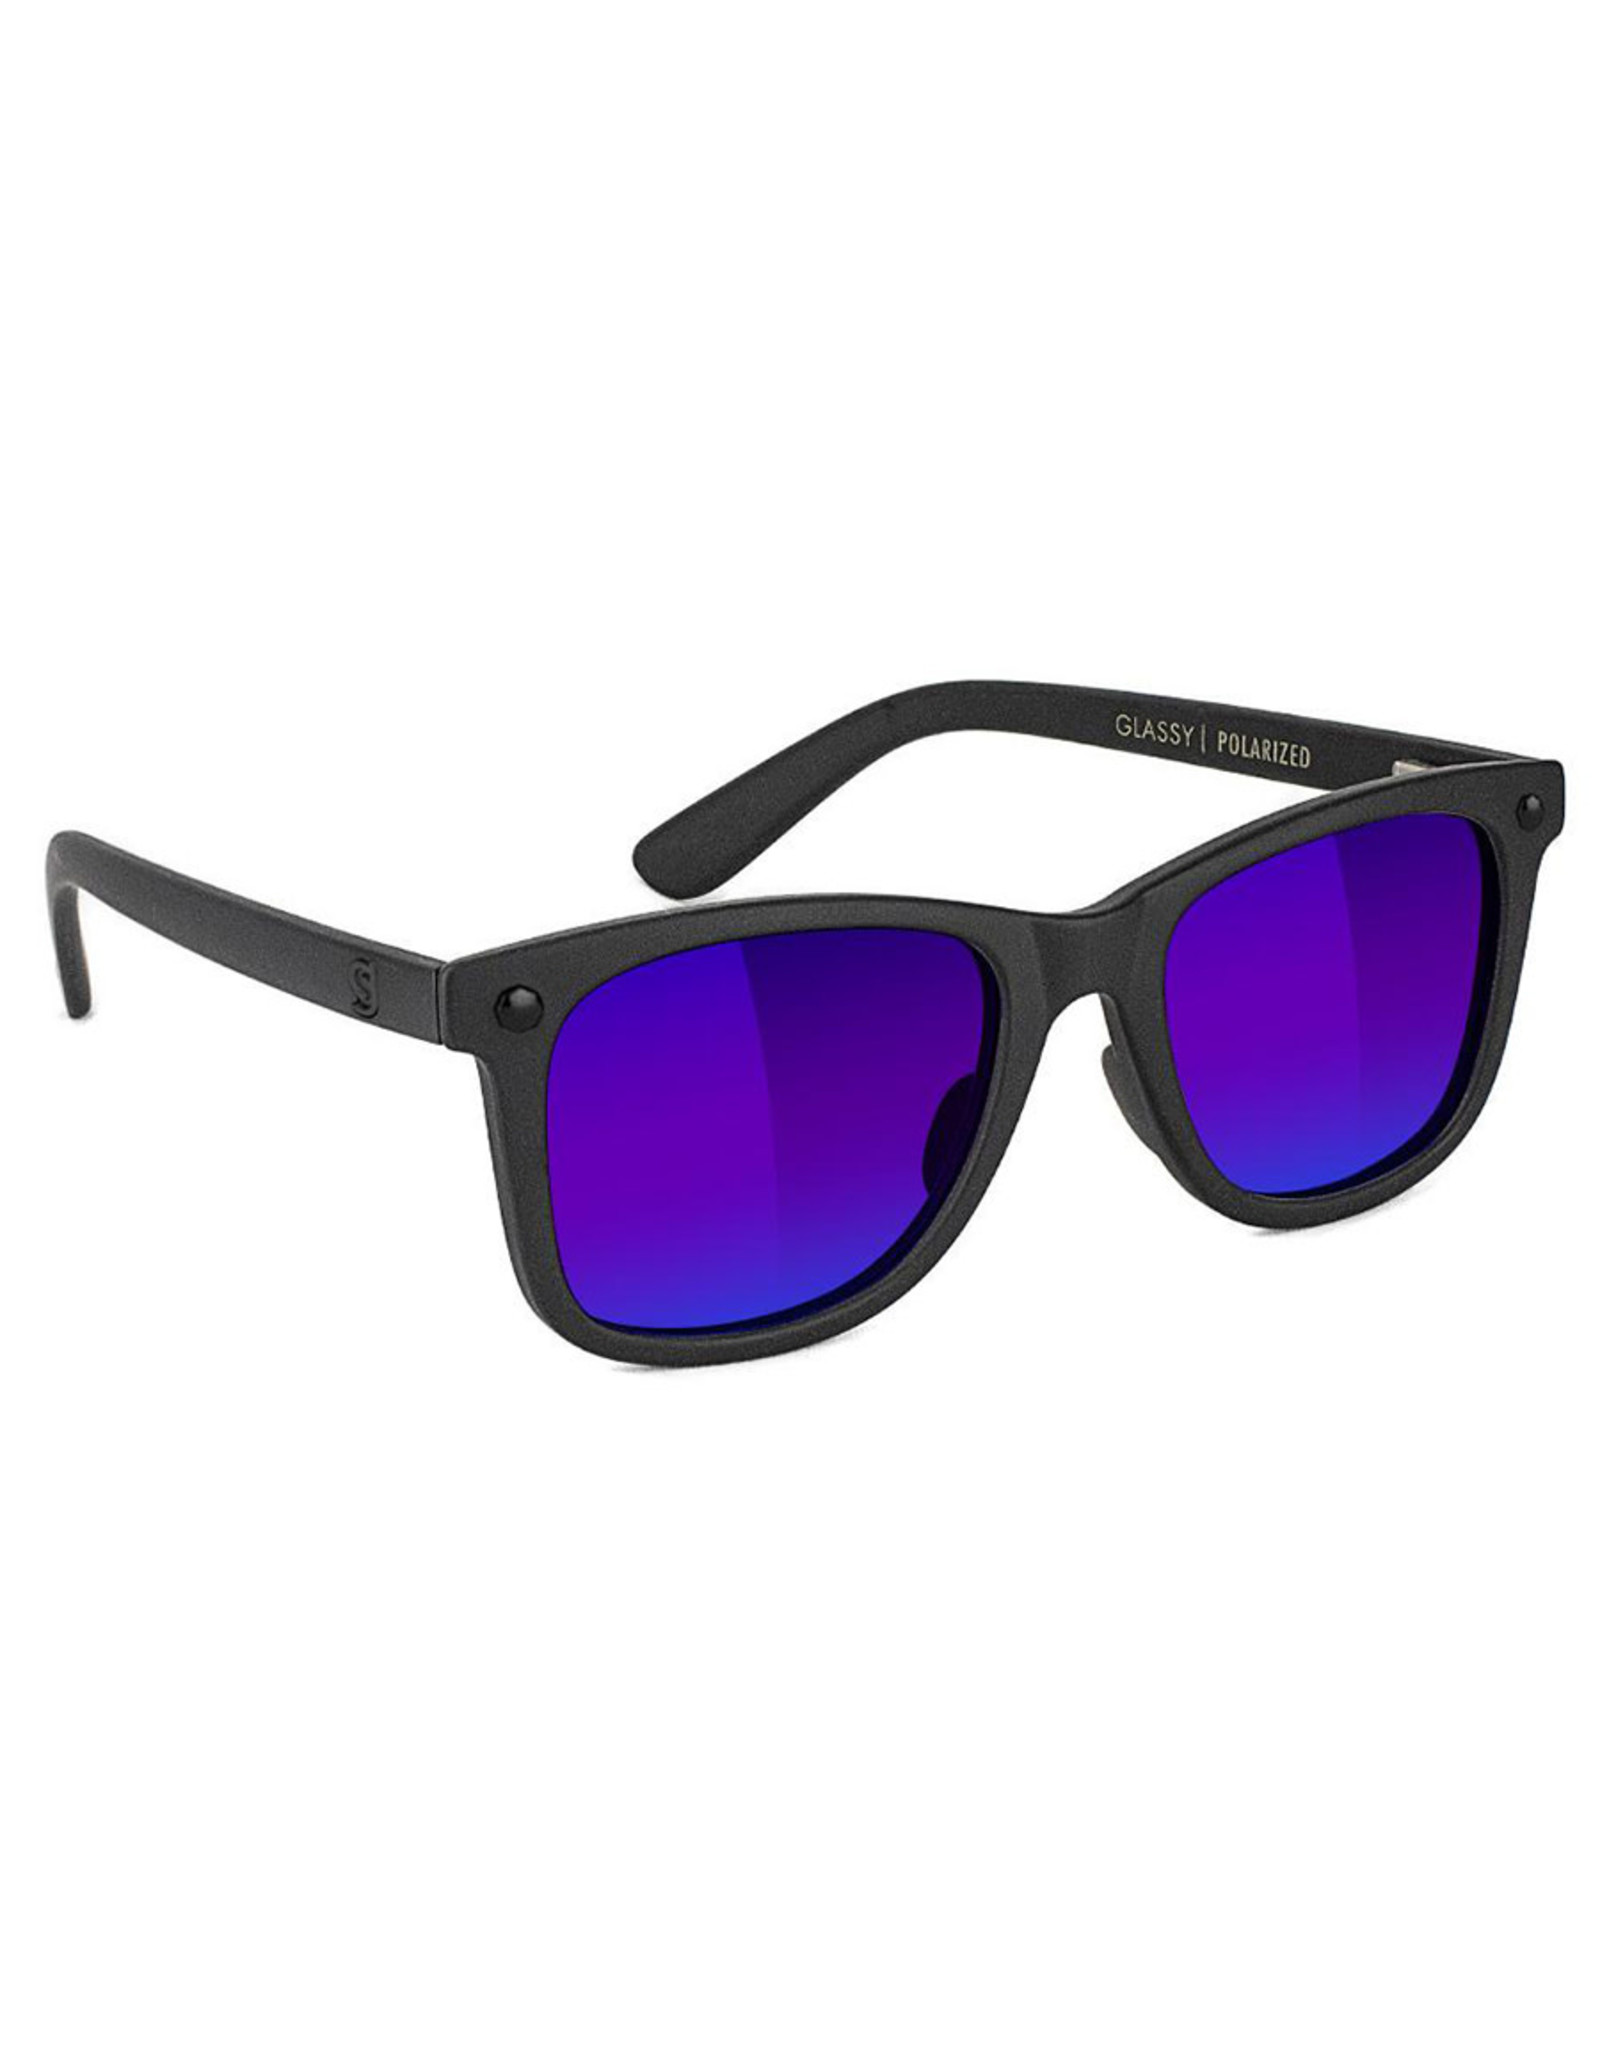 Glassy Sunglasses Glassy Sunglasses Mikemo Premium (Black Matte/Blue Mirror Polarized Lens)